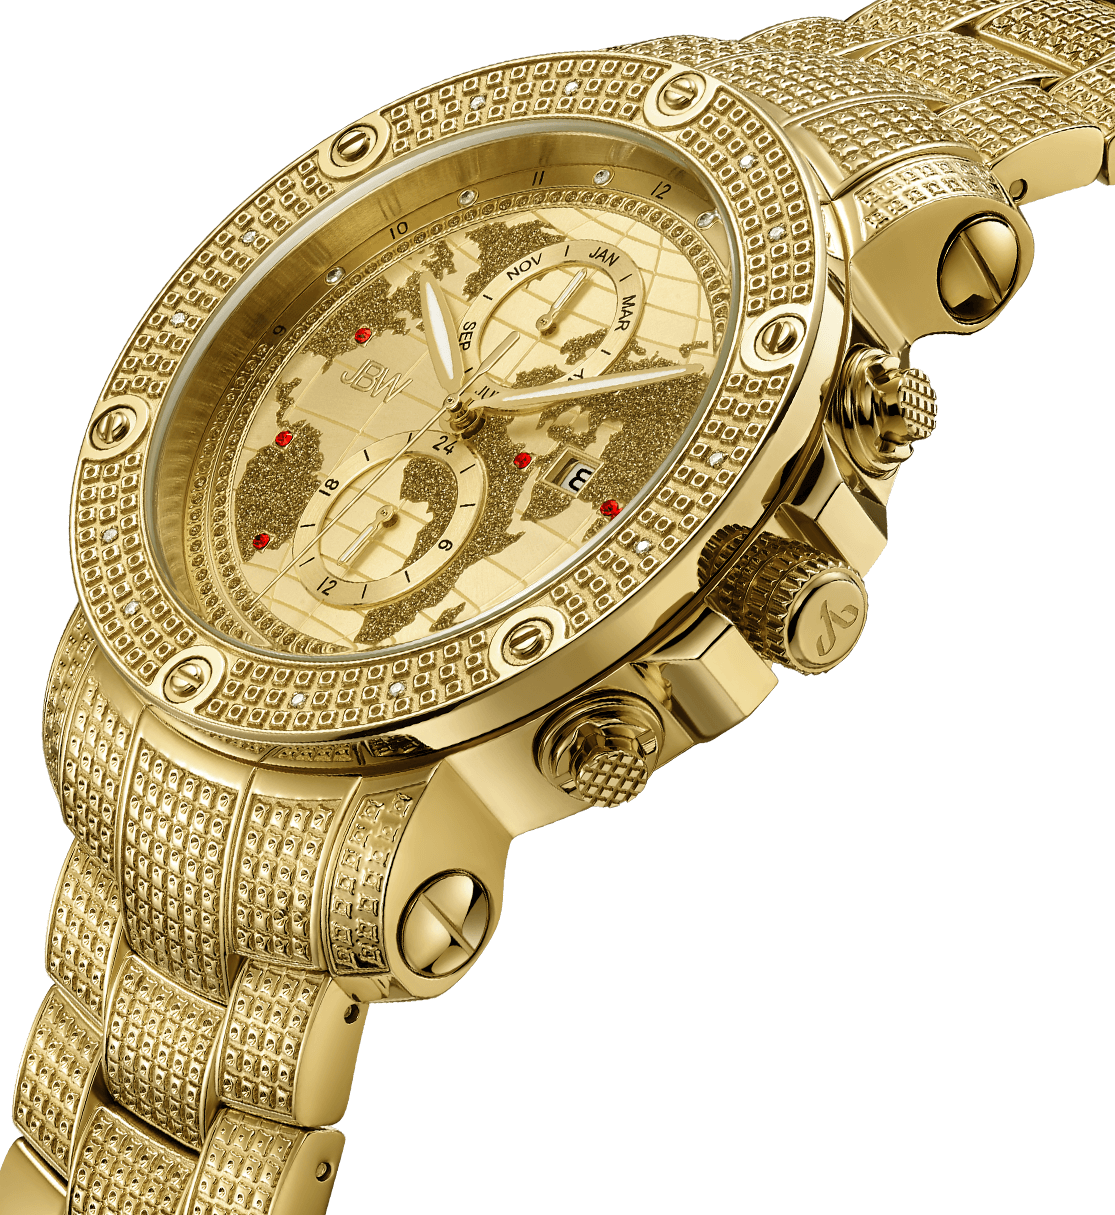 jbw-veyron-j6360c-gold-diamond-watch-hero-mobile